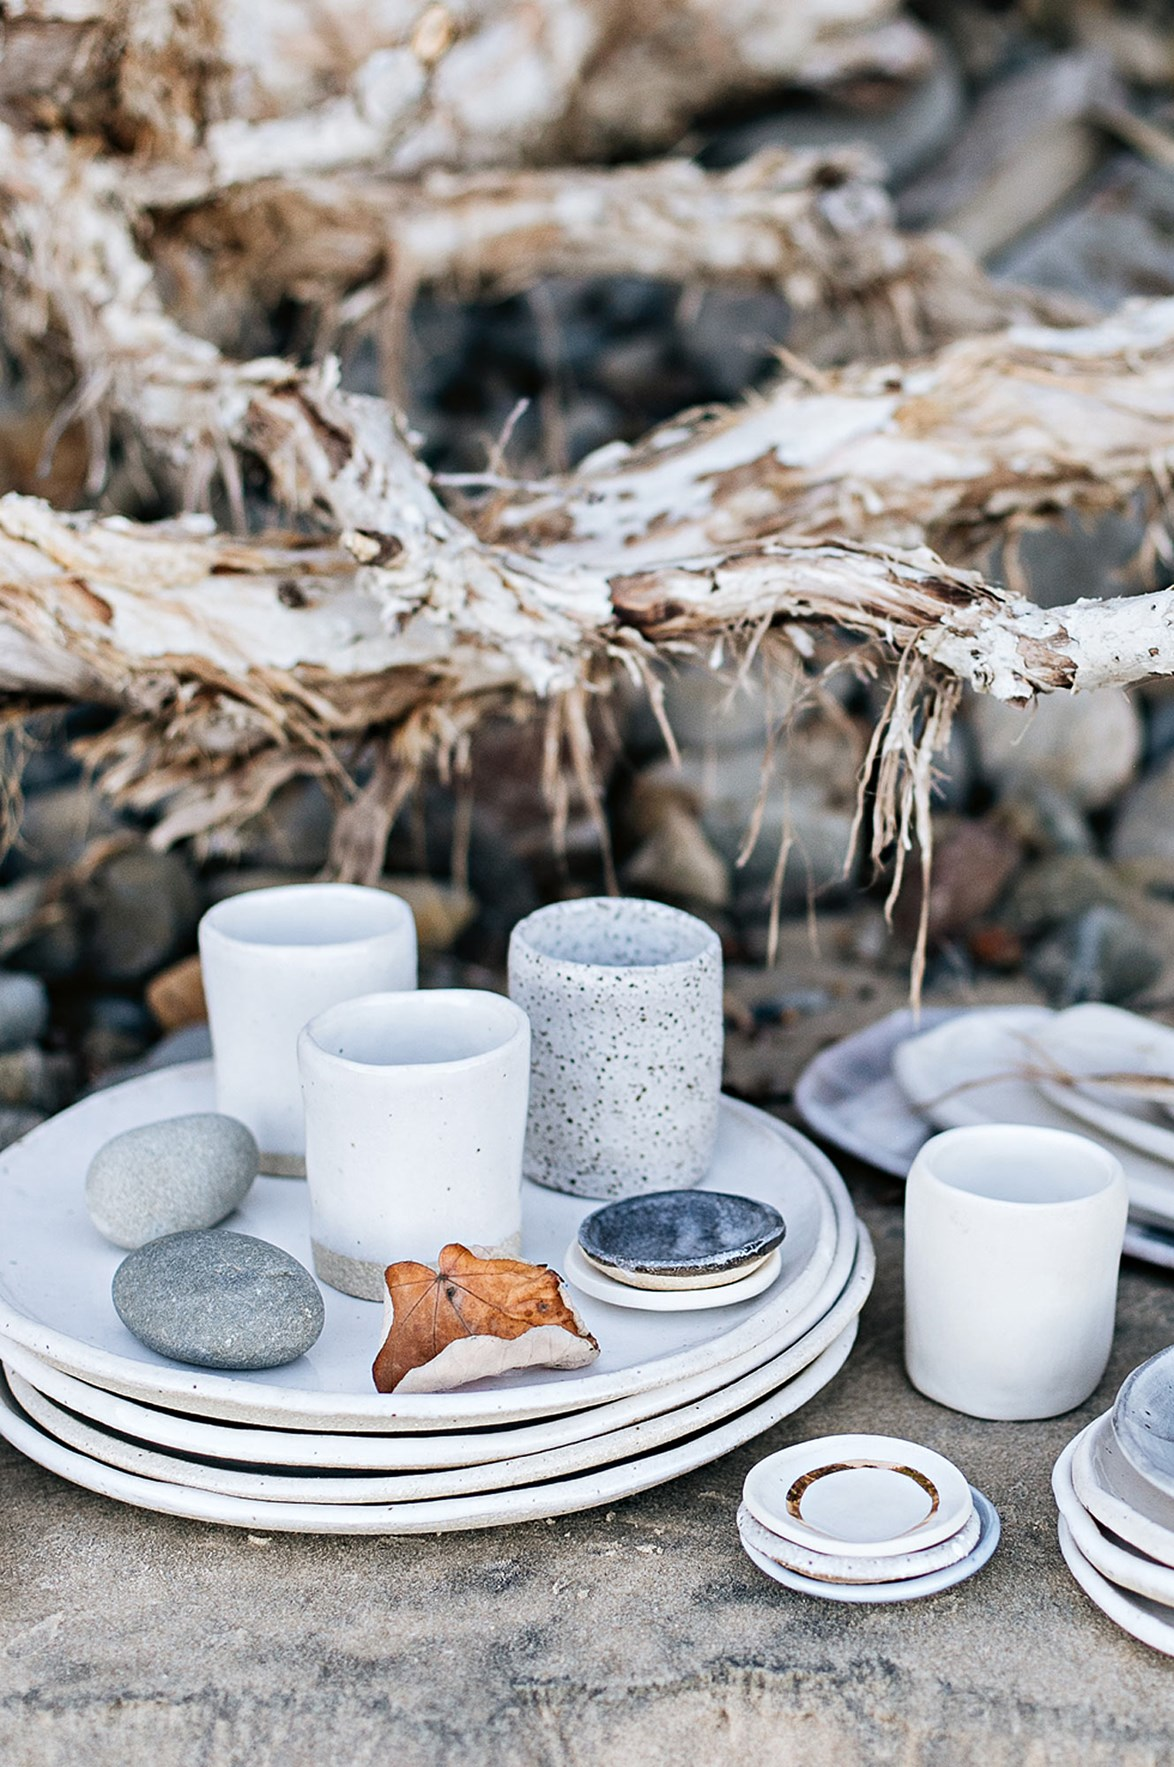 "**Married To The Sea** <br><br> A childhood spent absorbing the colours, shapes and ever-changing light of the south-east Queensland coastline was the inspiration behind Anna Braddock's [boutique ceramics business](https://www.homestolove.com.au/handmade-ceramic-platters-13992|target=""_blank""), Married To The Sea Ceramics. The pieces she makes are free form, organic shapes made by hand – reflecting the tones and textures of the landscape and, of course, the sea. [marriedtothesea.com.au](http://www.marriedtothesea.com.au/